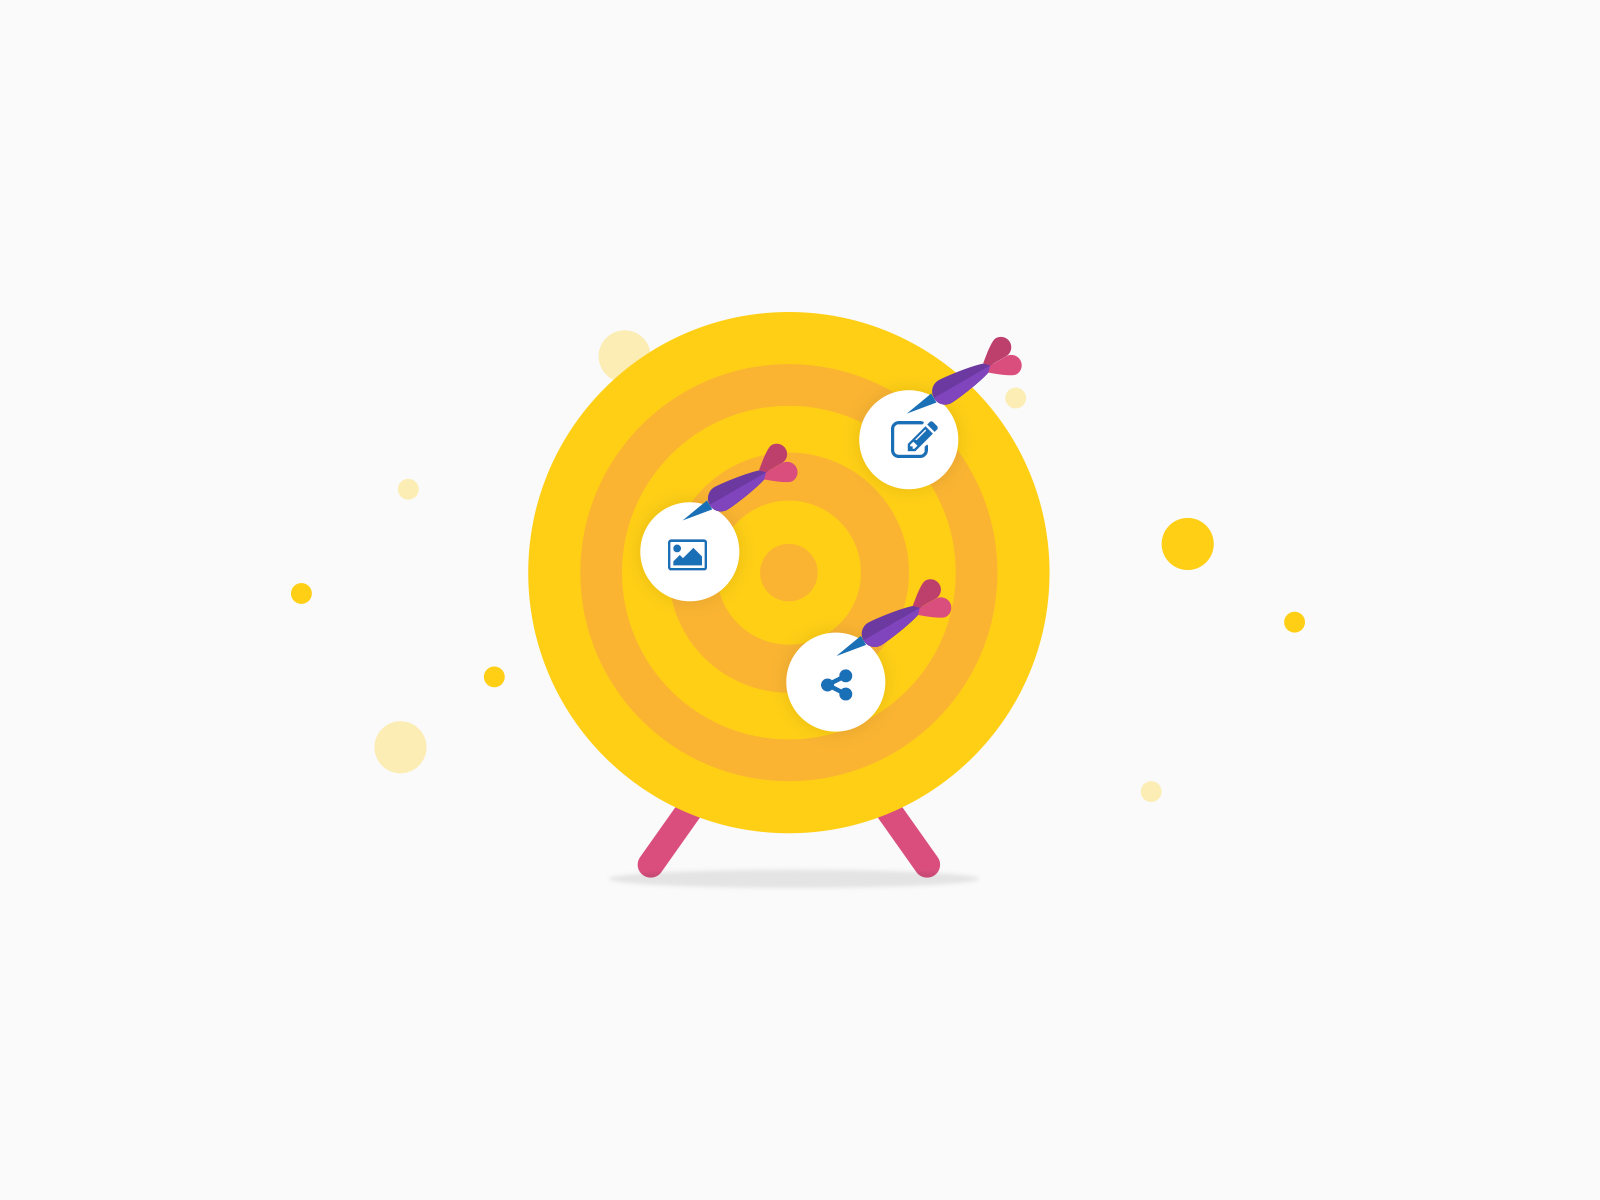 Vector illustrations for Digital Marketing Services, by Chiara Mensa, made with Clue Design